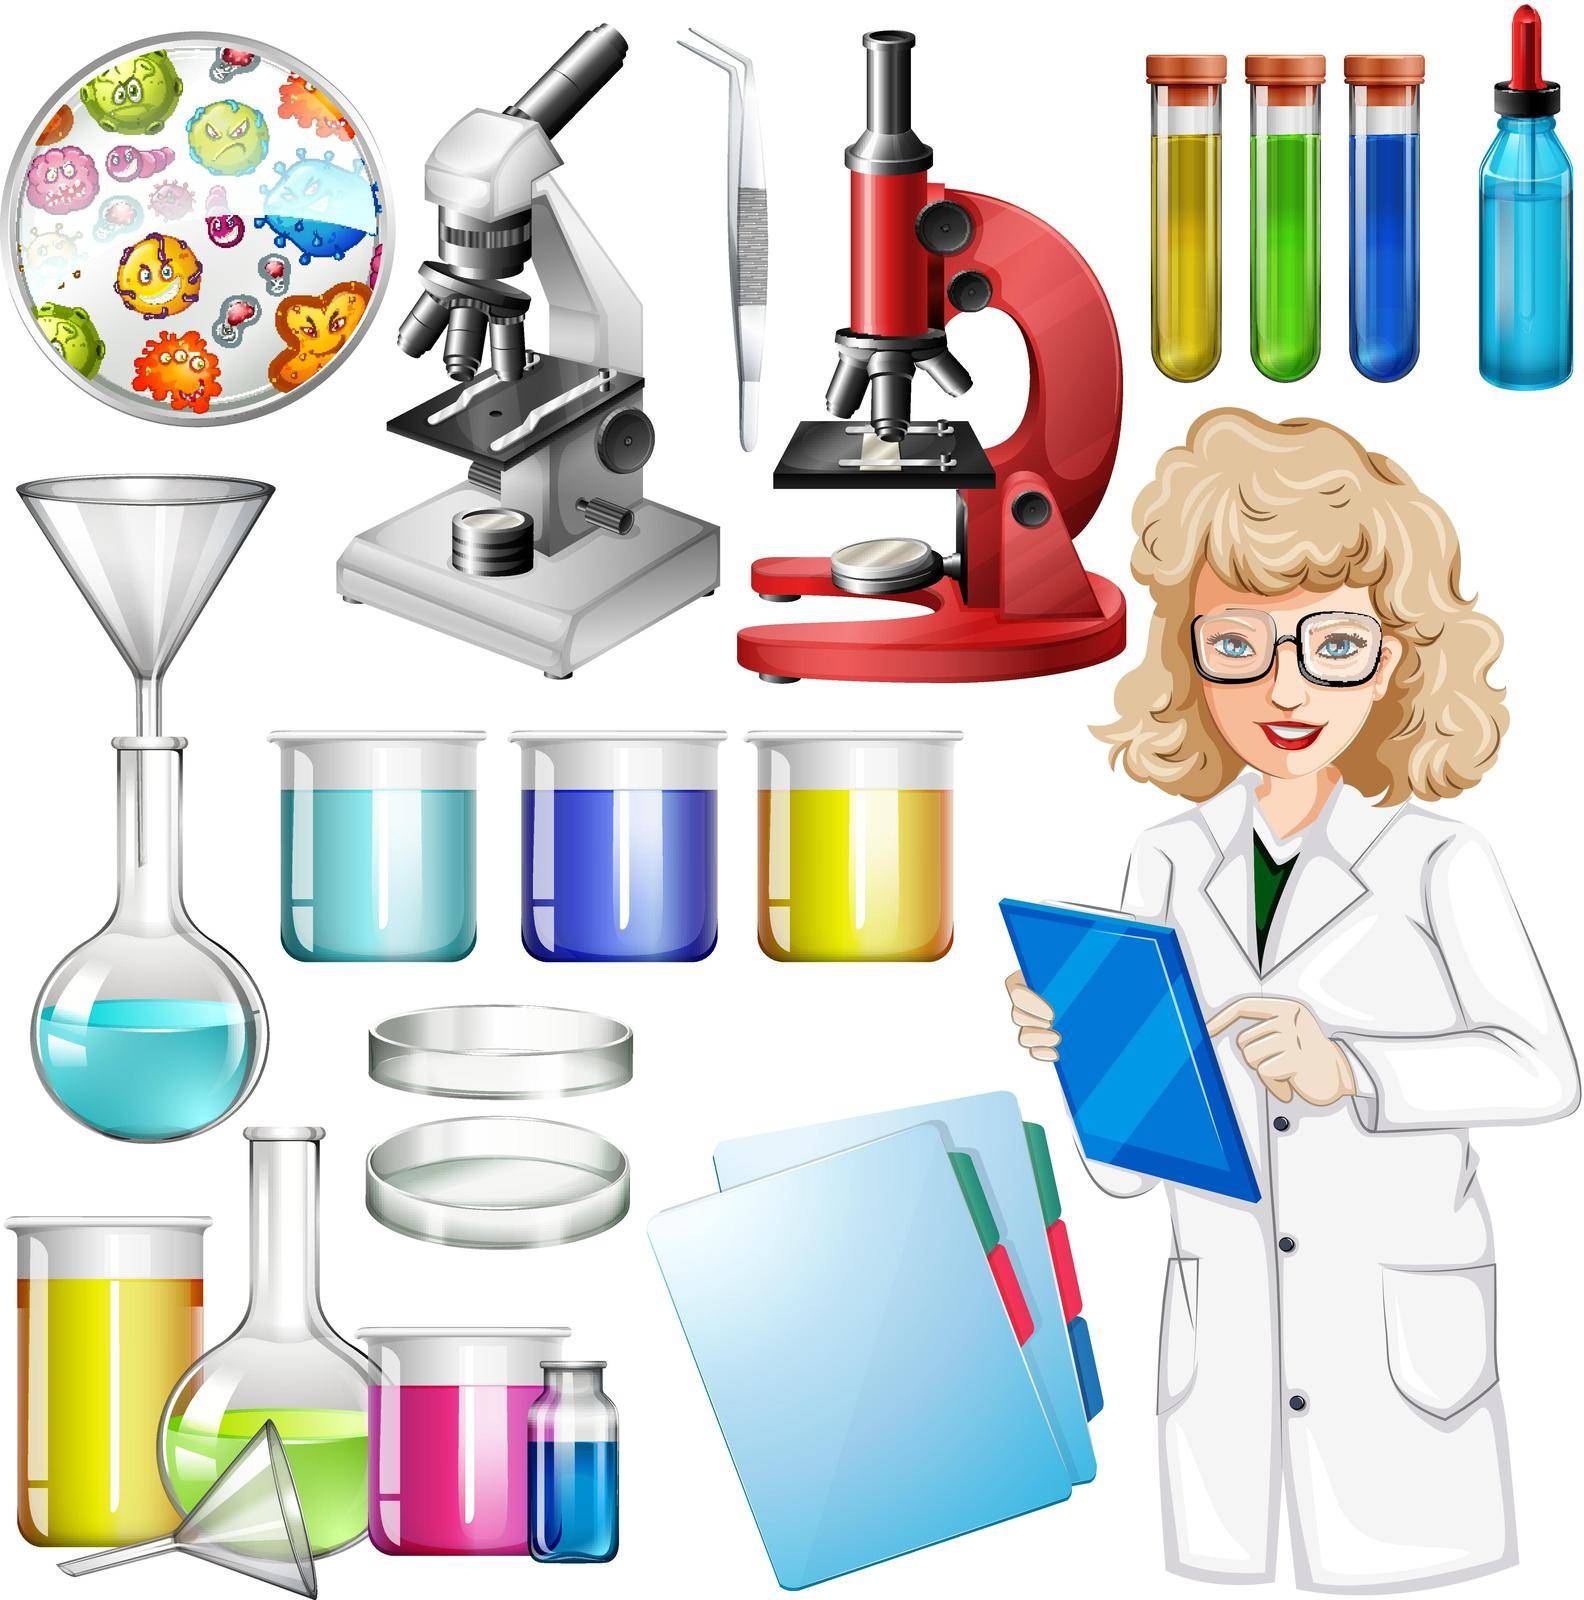 Scientist with science equipment illustration